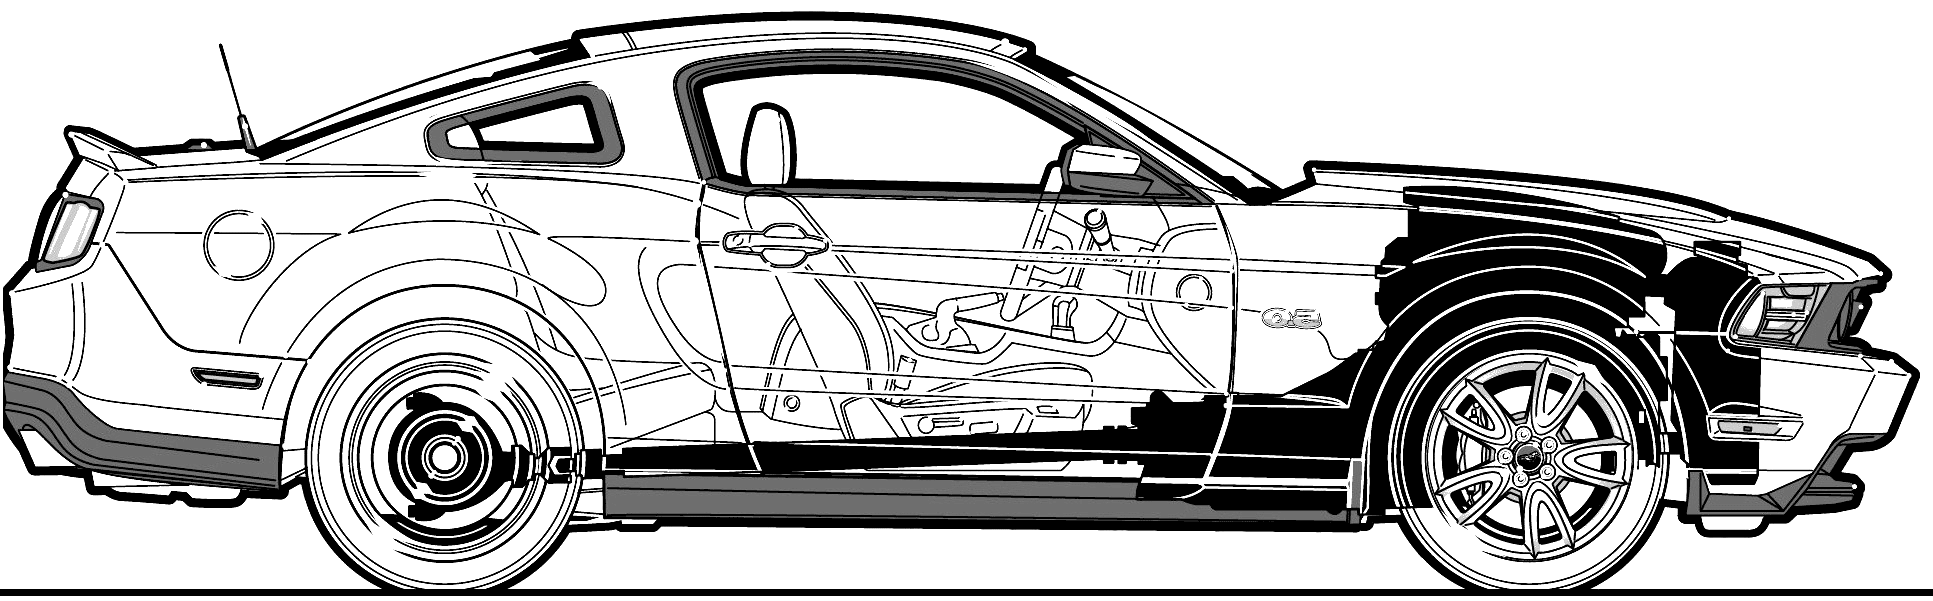 Ford Mustang GT Blueprints